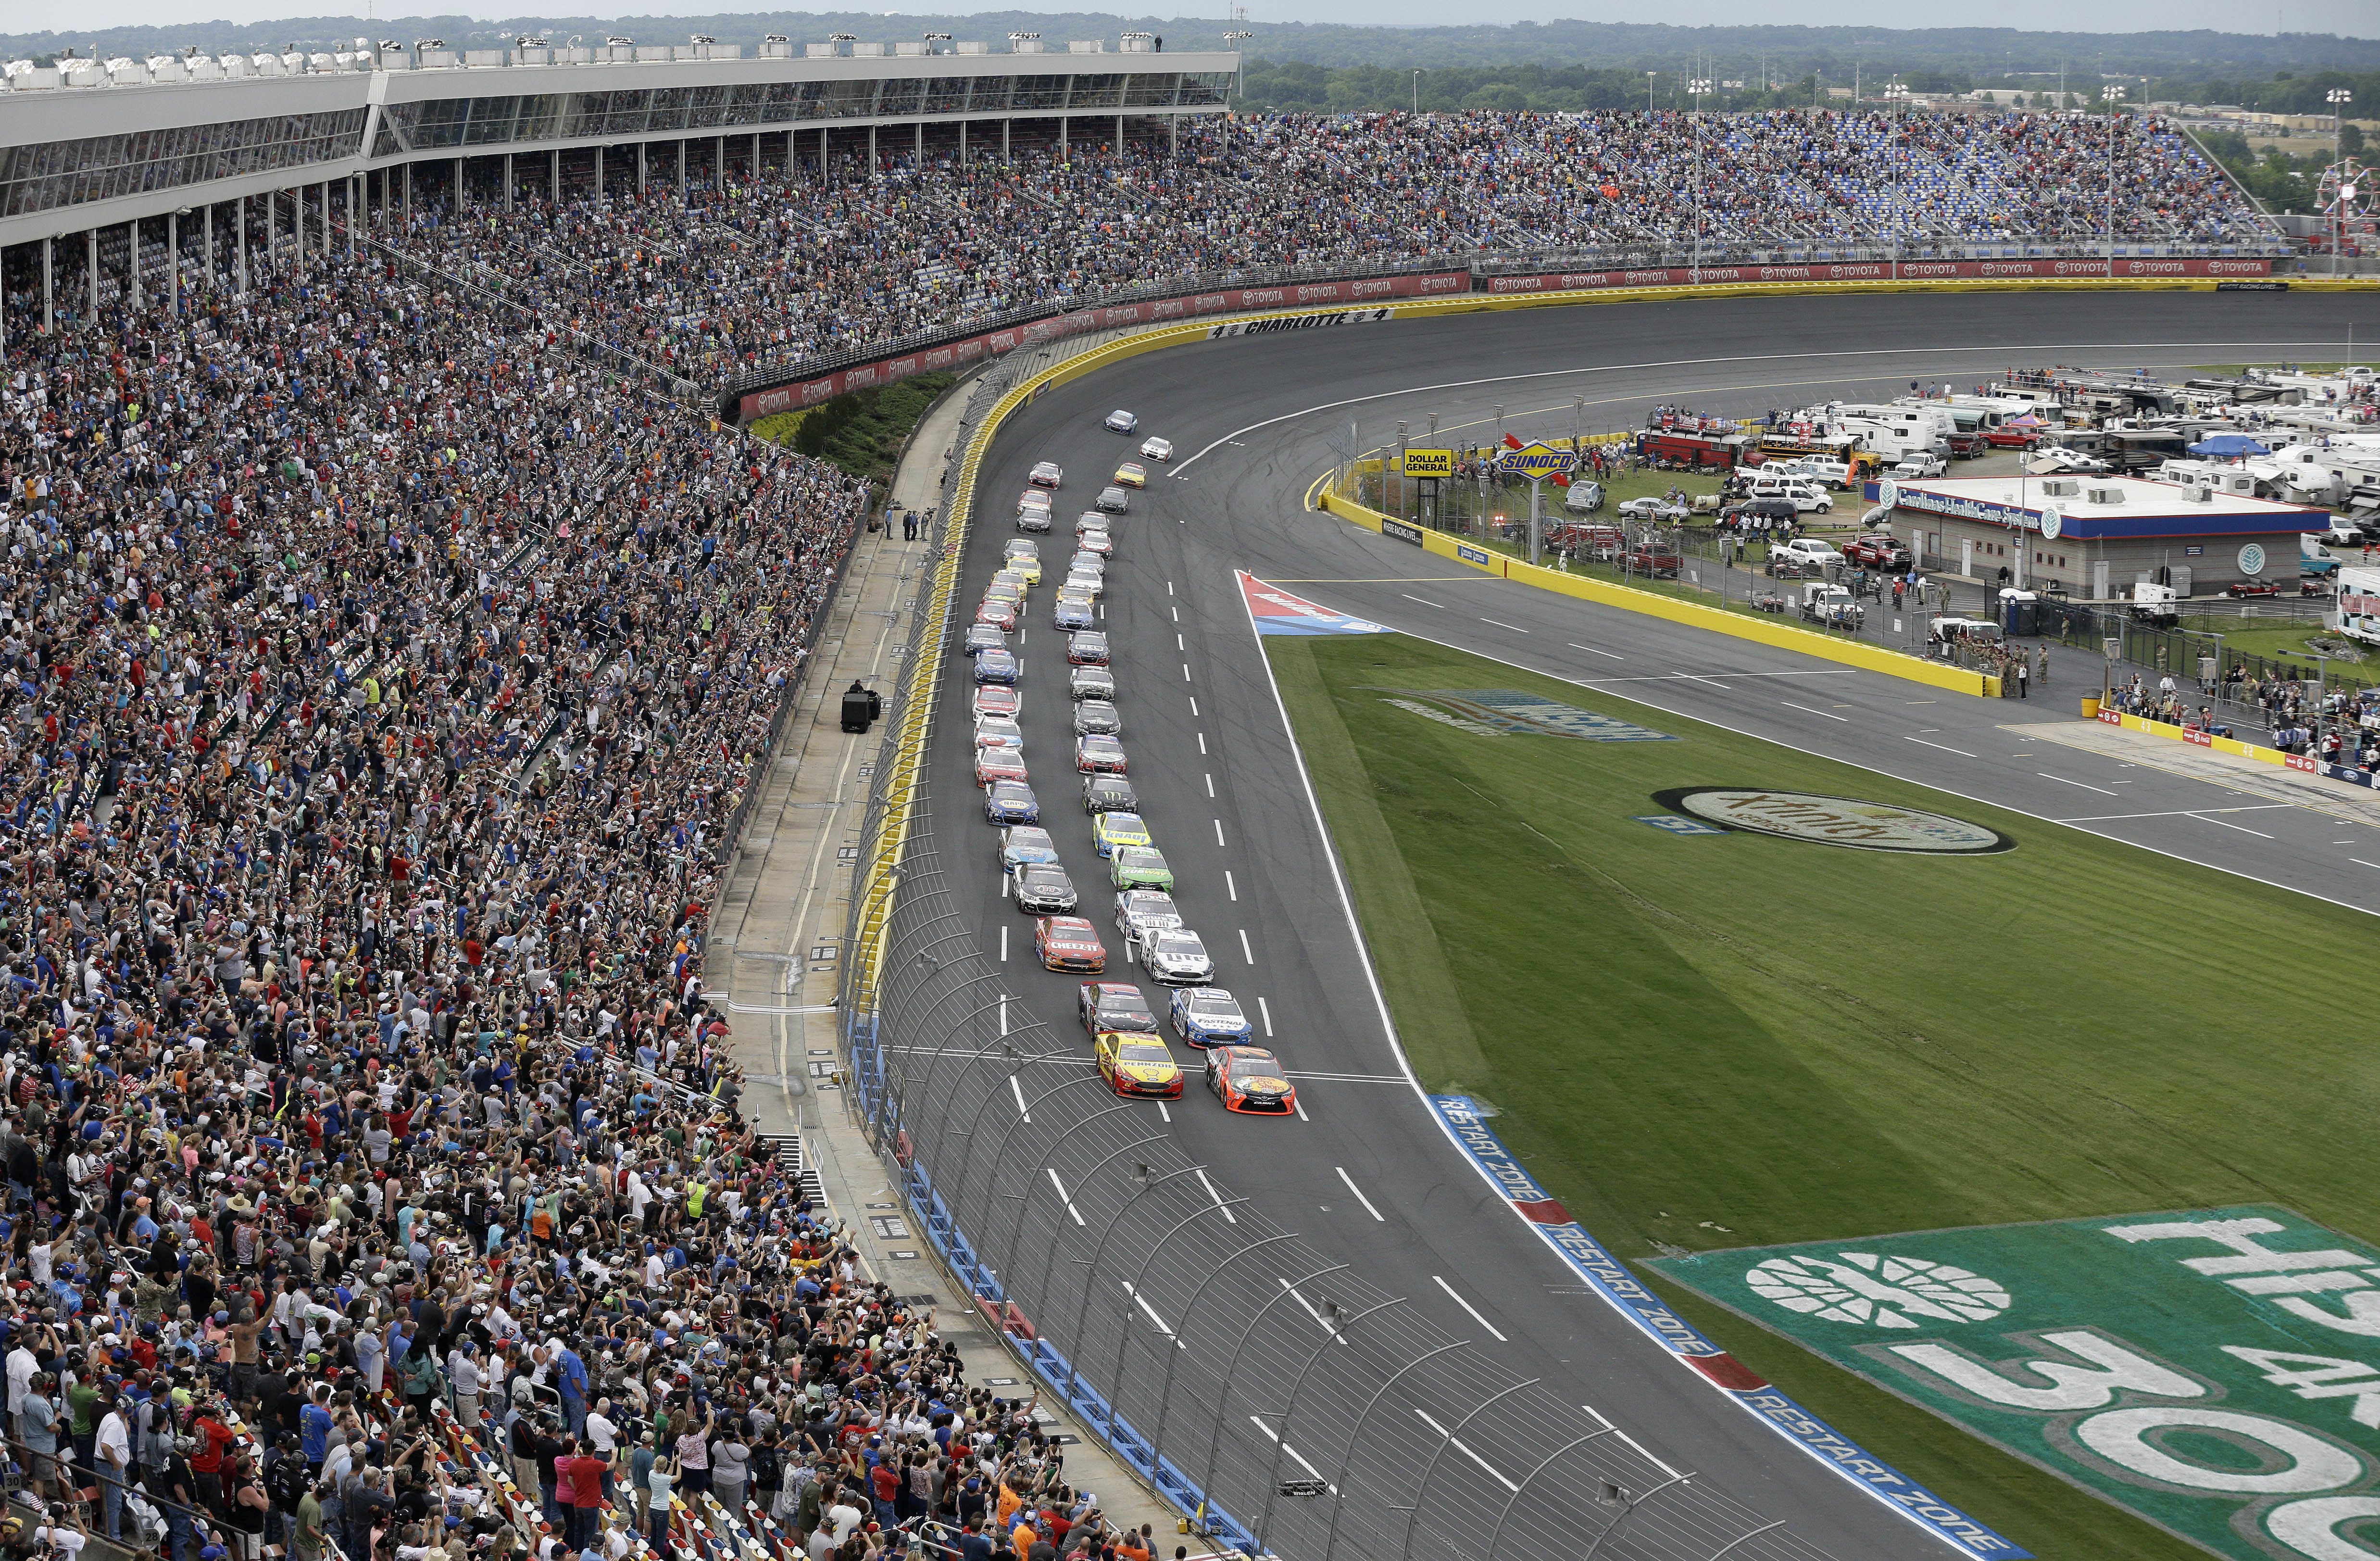 Cars drive along the front stretch as they approach the start-finish line to begin the NASCAR Sprint Cup Series auto race at the Charlotte Motor Speedway in Concord, N.C., Sunday, May 29, 2016. (AP Photo/Gerry Broome)